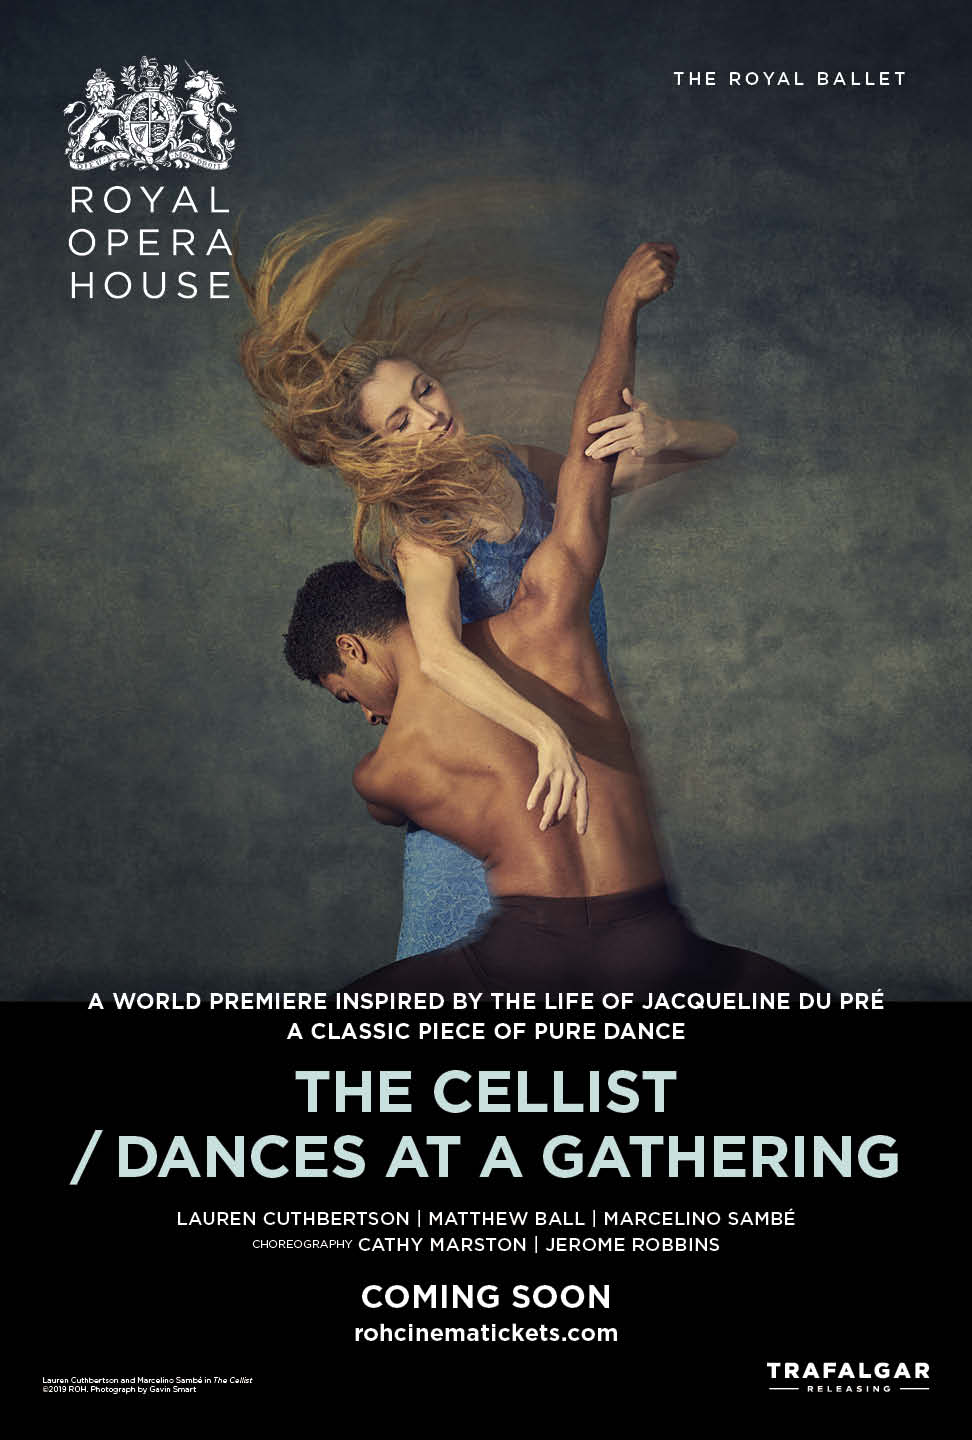 ROH Dances at a Gathering (The Royal Ballet)